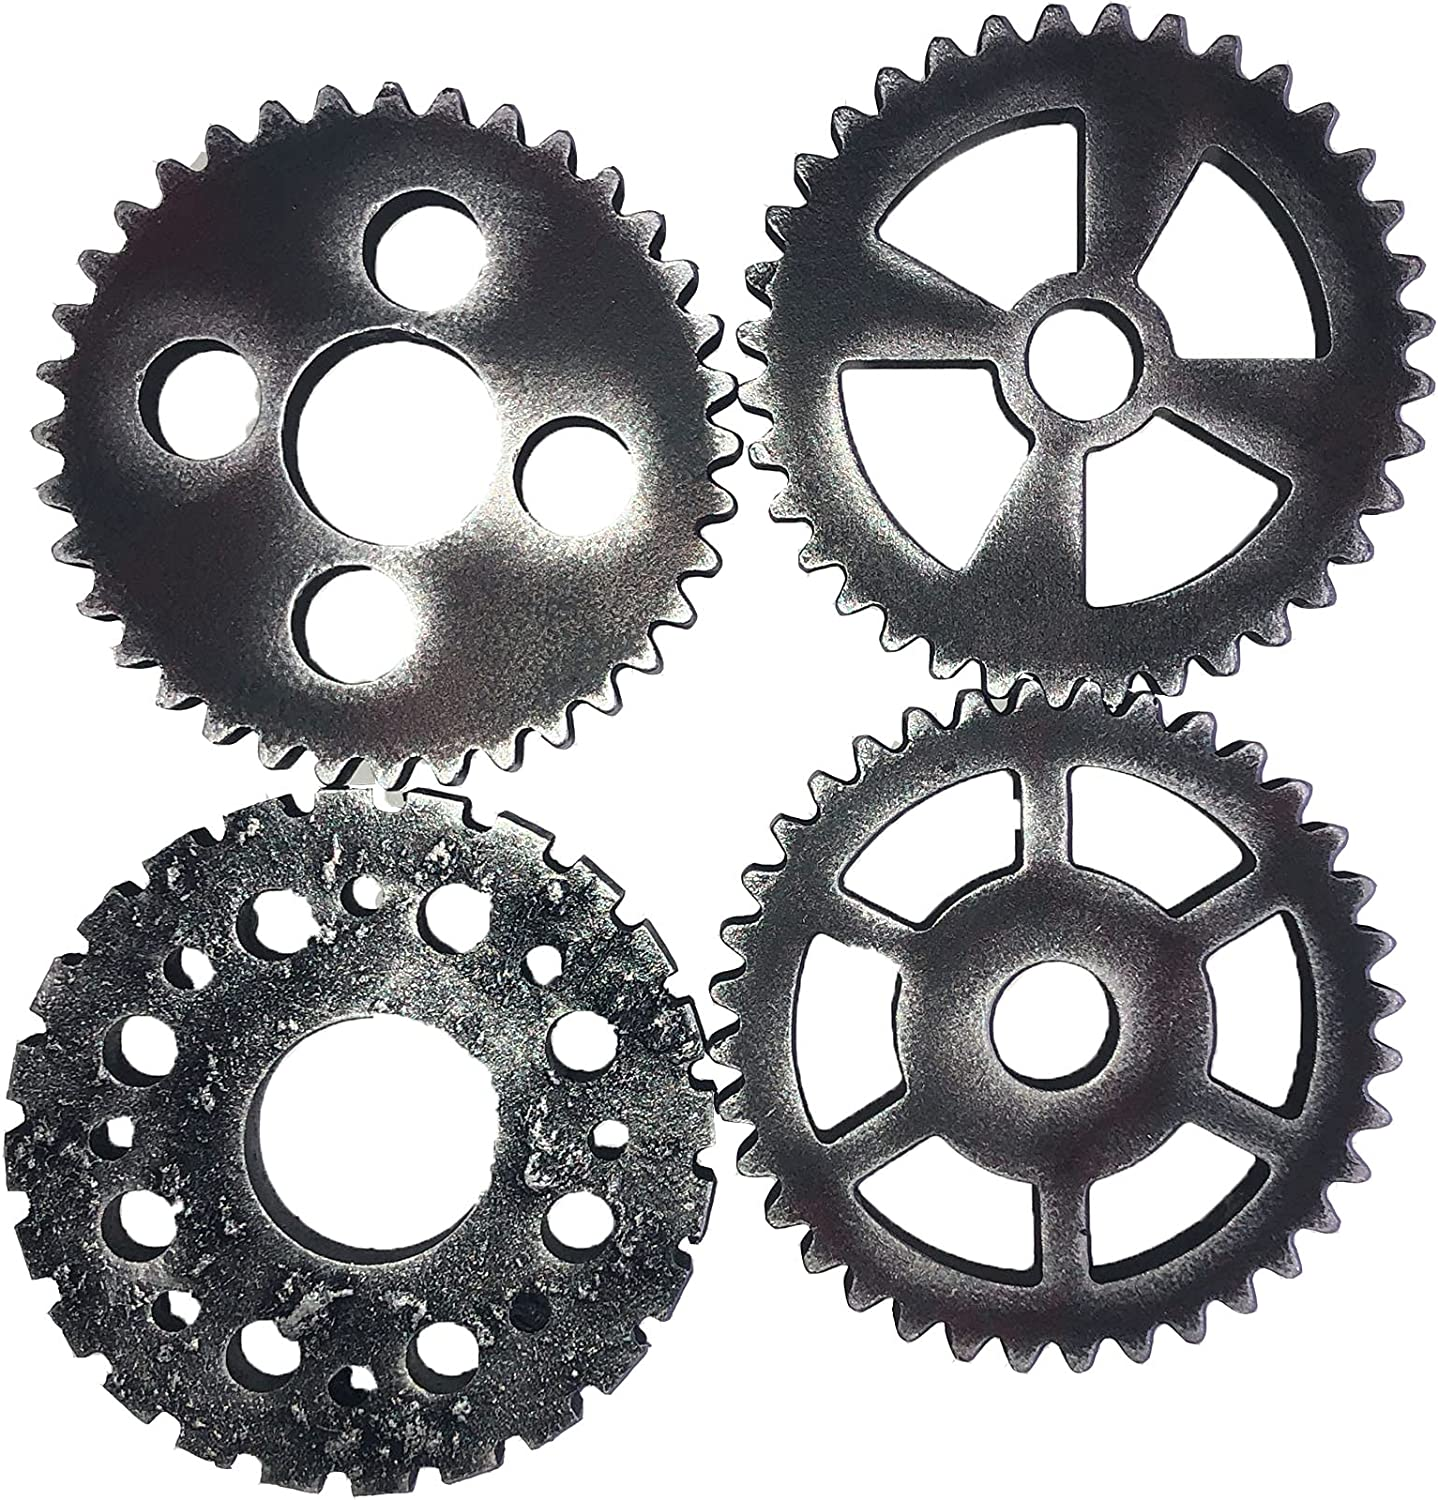 Vintage Steampunk Gear Wheel, 4 Pieces 12cm Suspensible Wooden Gear fit for Home Bar Art Craft Wall Decoration